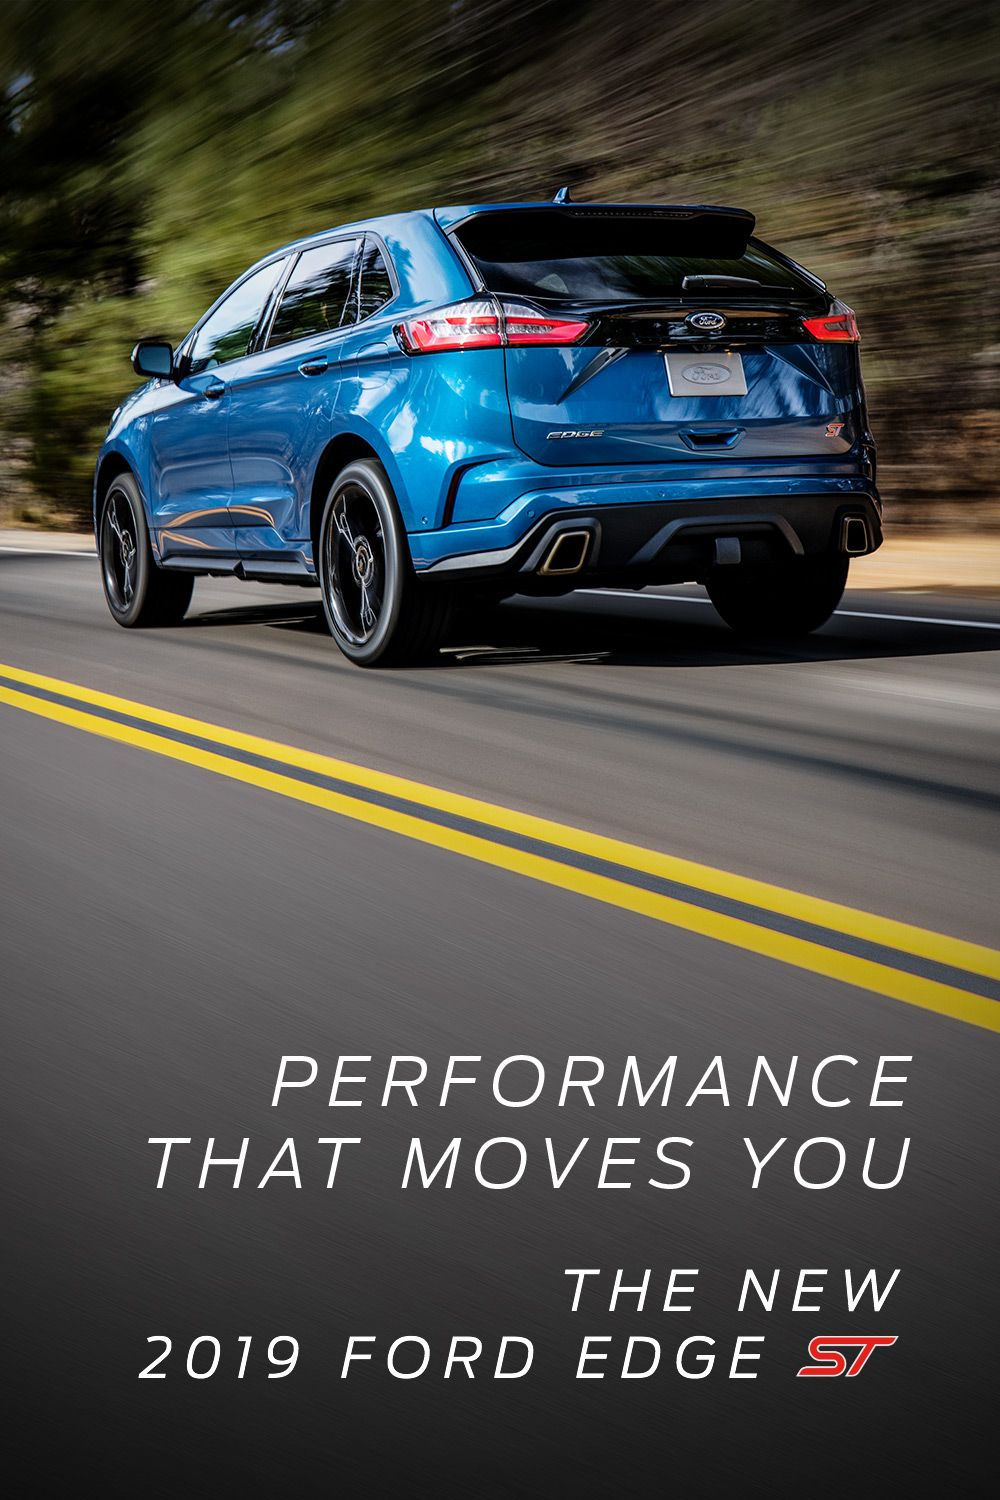 Experience the feeling of performance in an SUV Ford